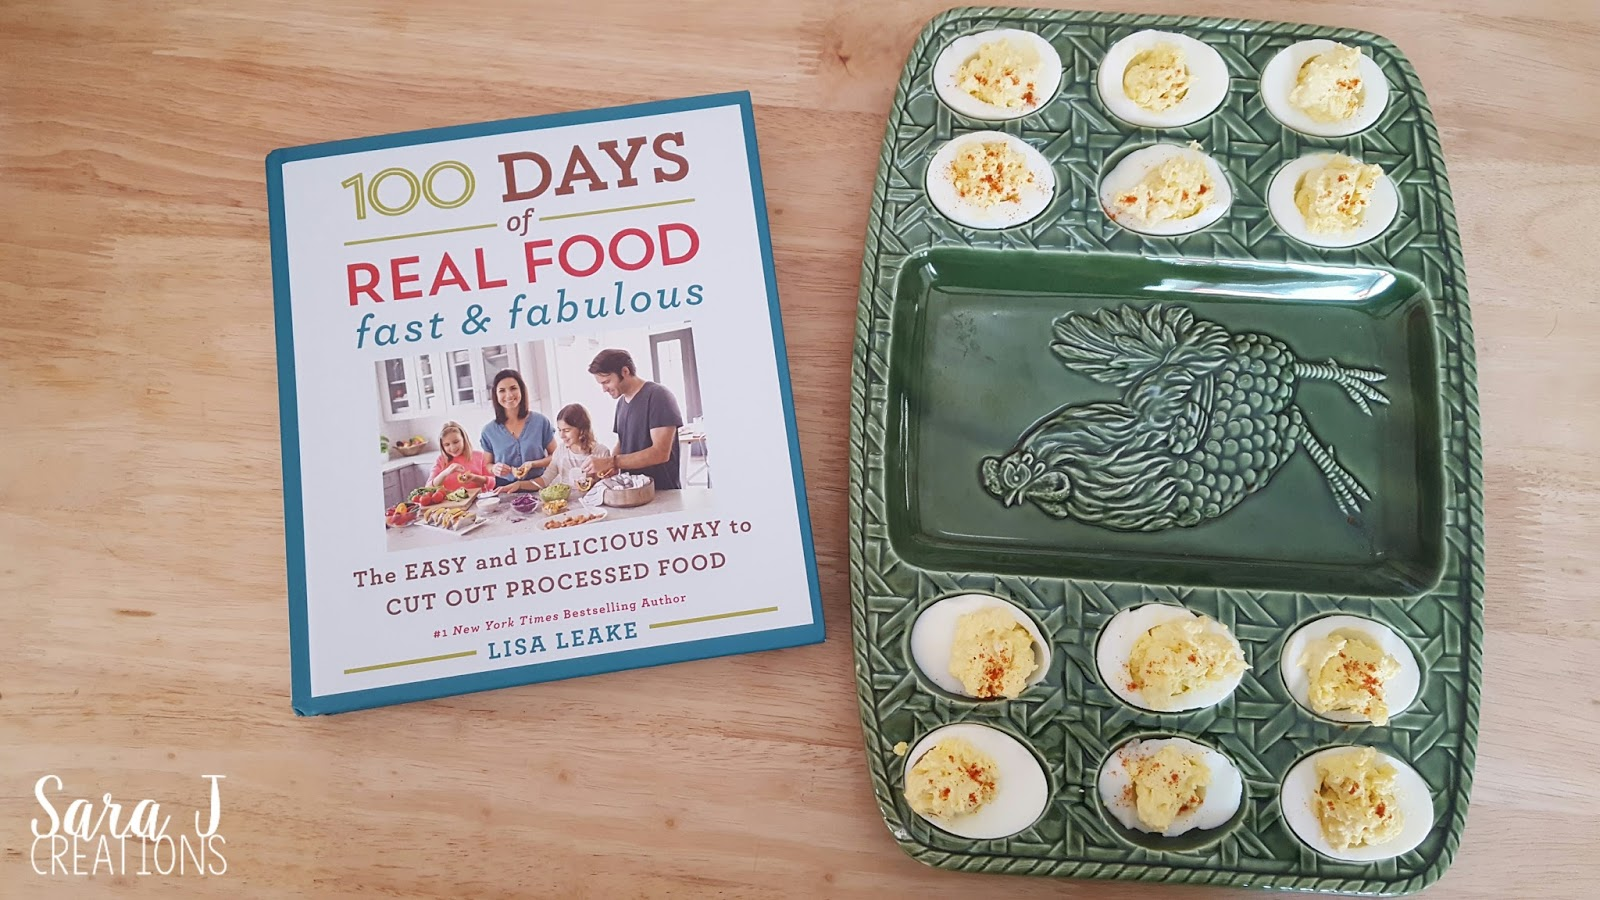 100 Days of Real Food Fast & Fabulous review and giveaway. So many great and fast recipes for breakfast, lunch, dinner and snacks all made with real food and nothing processed.